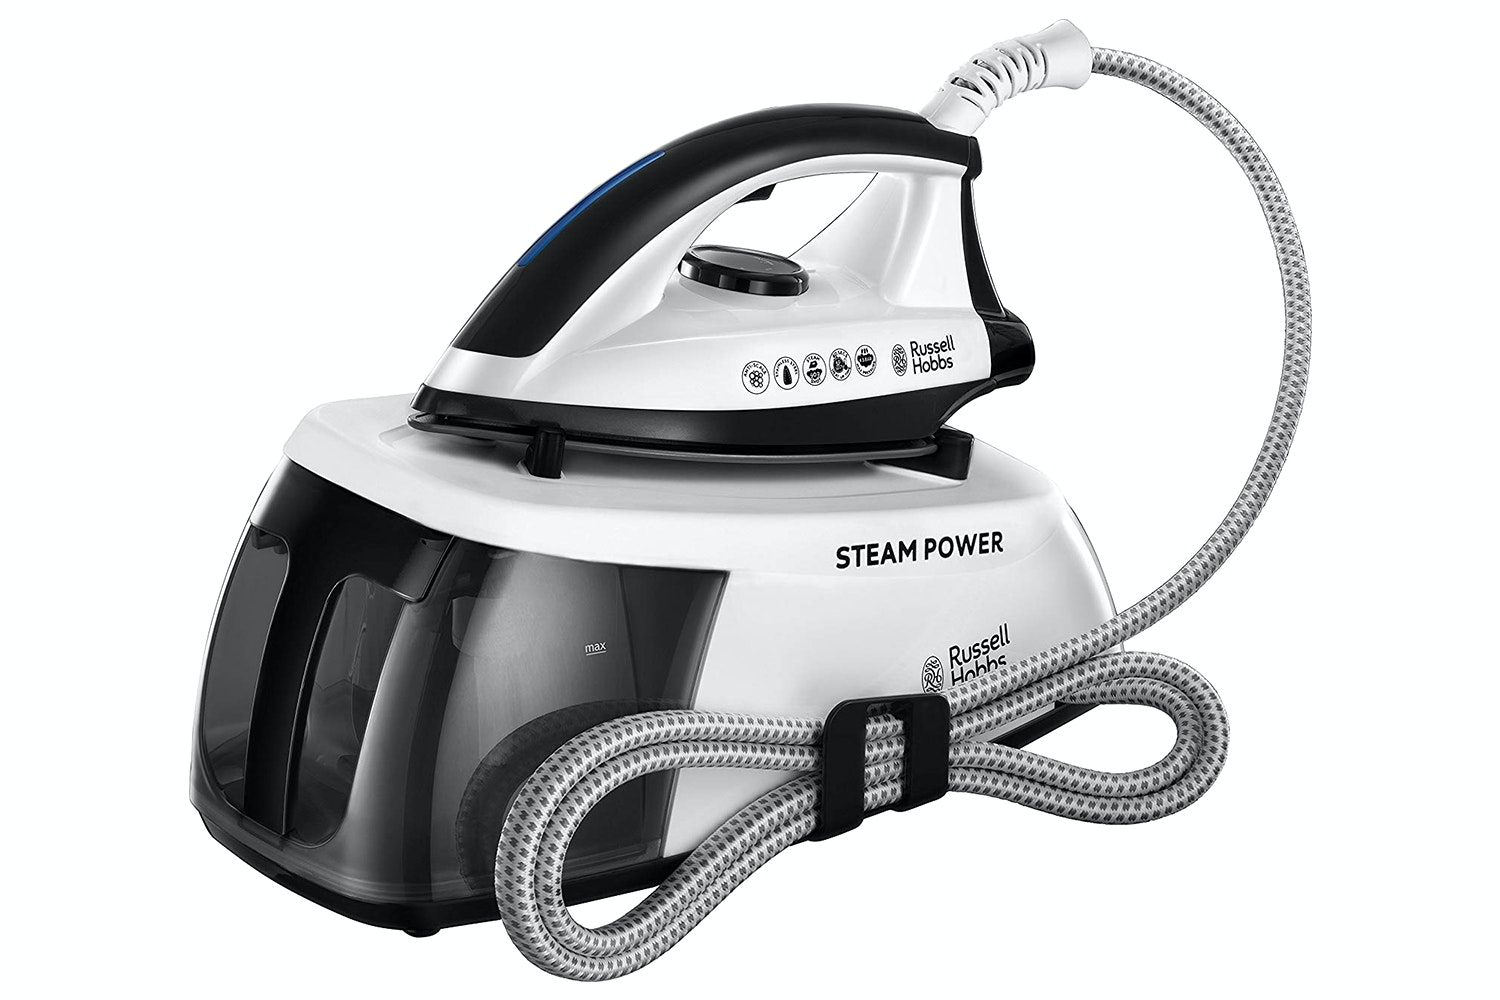 Russell Hobbs 2400W Steam Generator Iron | 24420